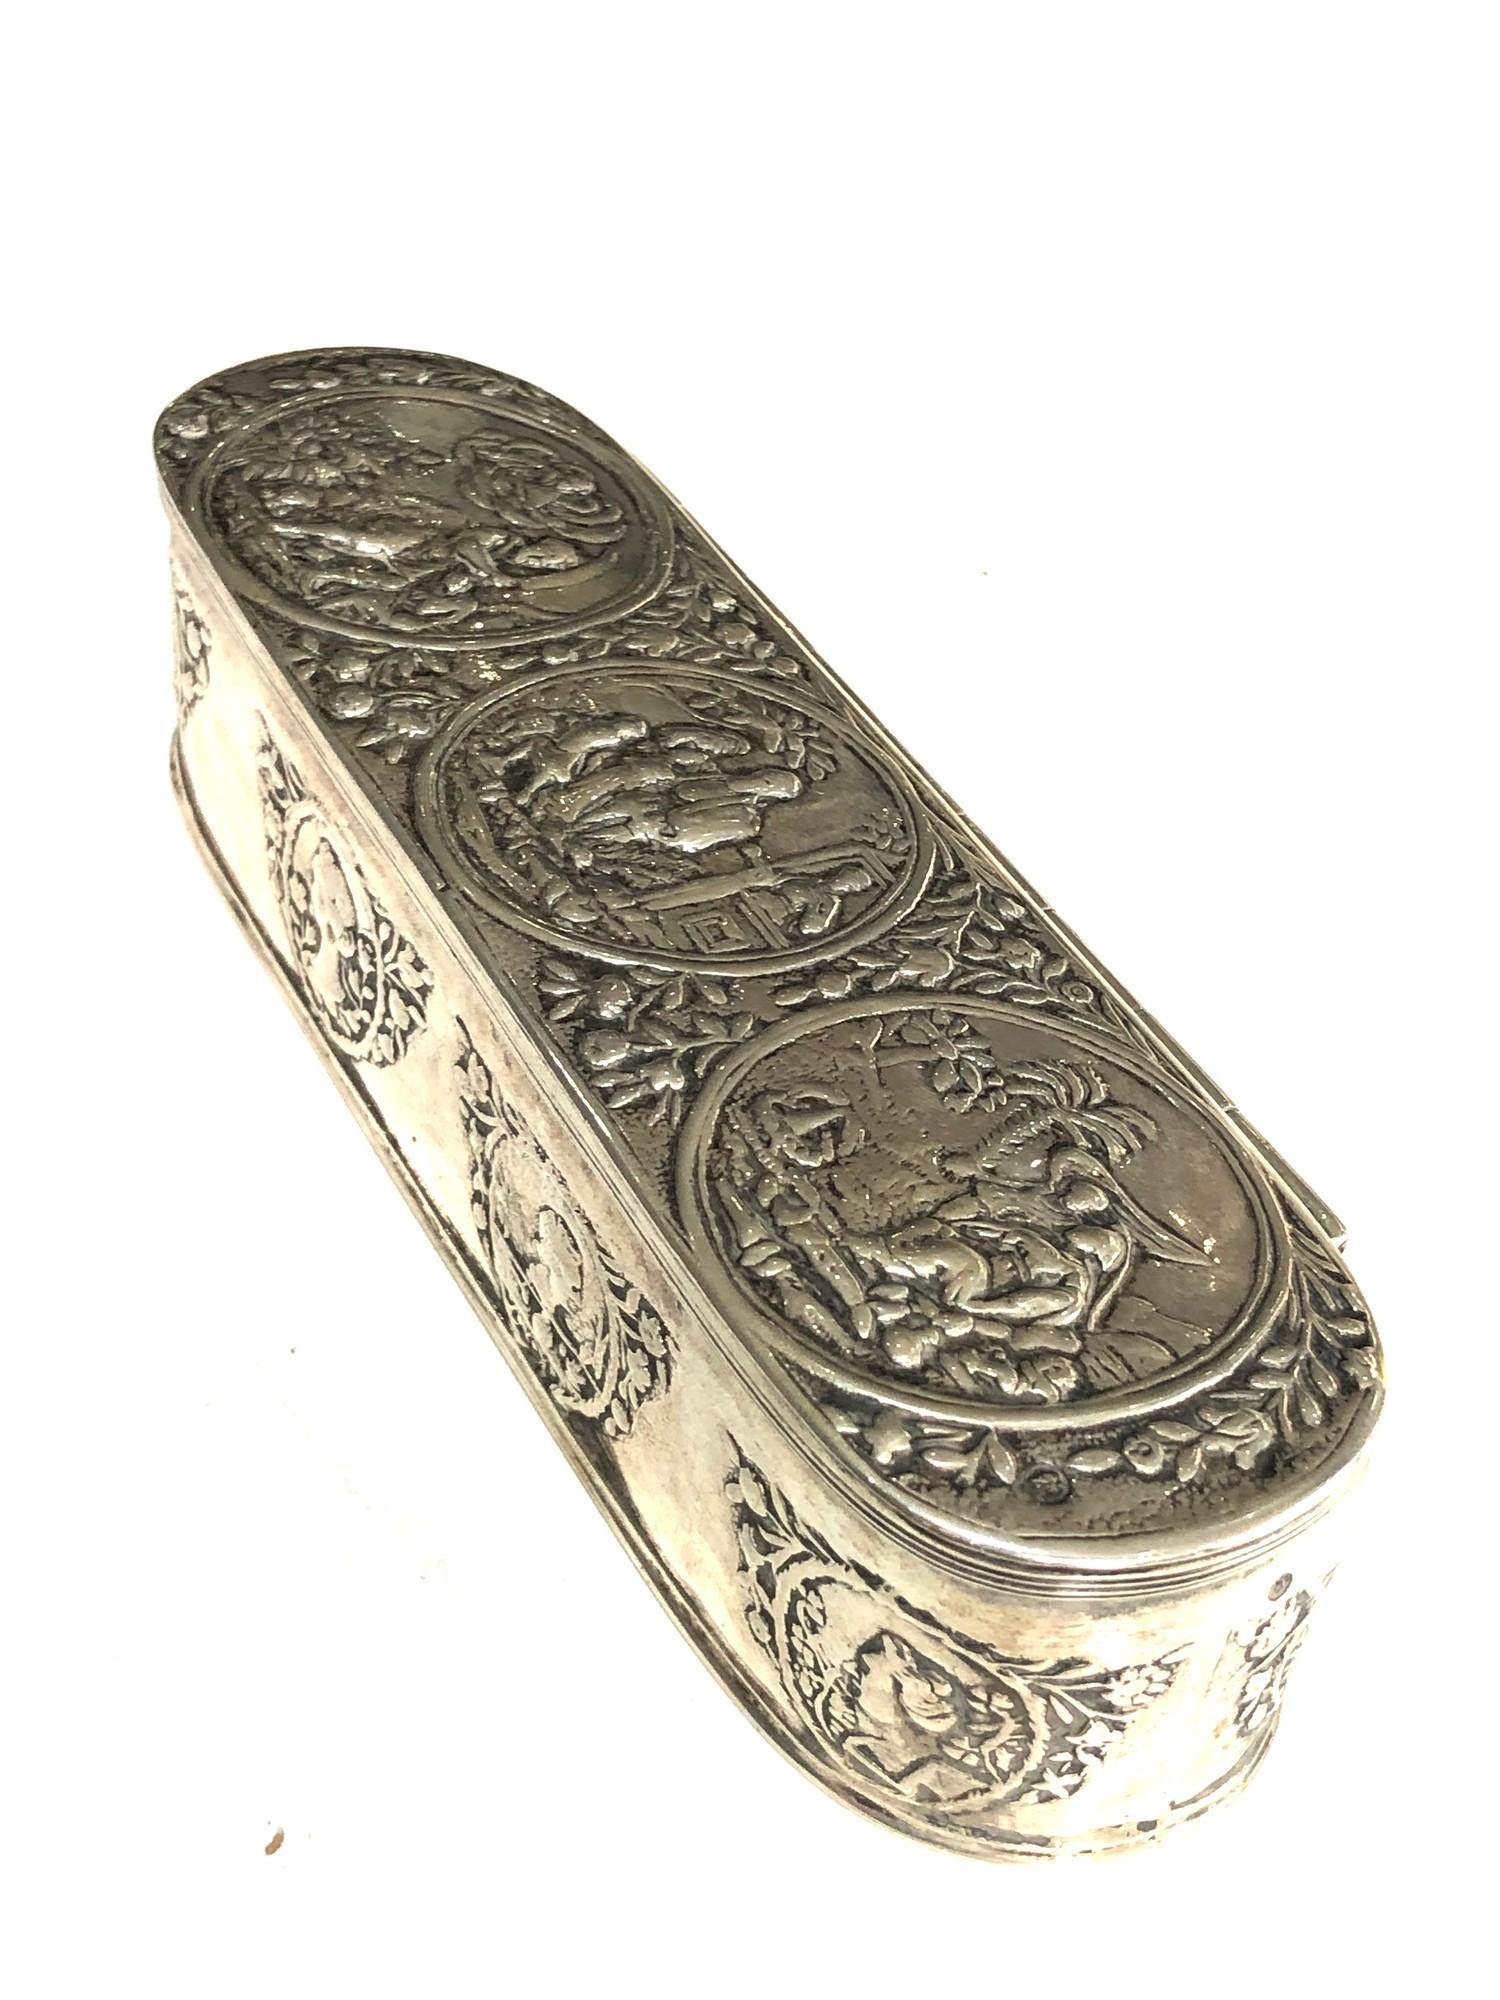 Antique Dutch silver tobacco box the hinged cover chased with scenes measures approx 16cm by 5cm 3. - Image 2 of 14